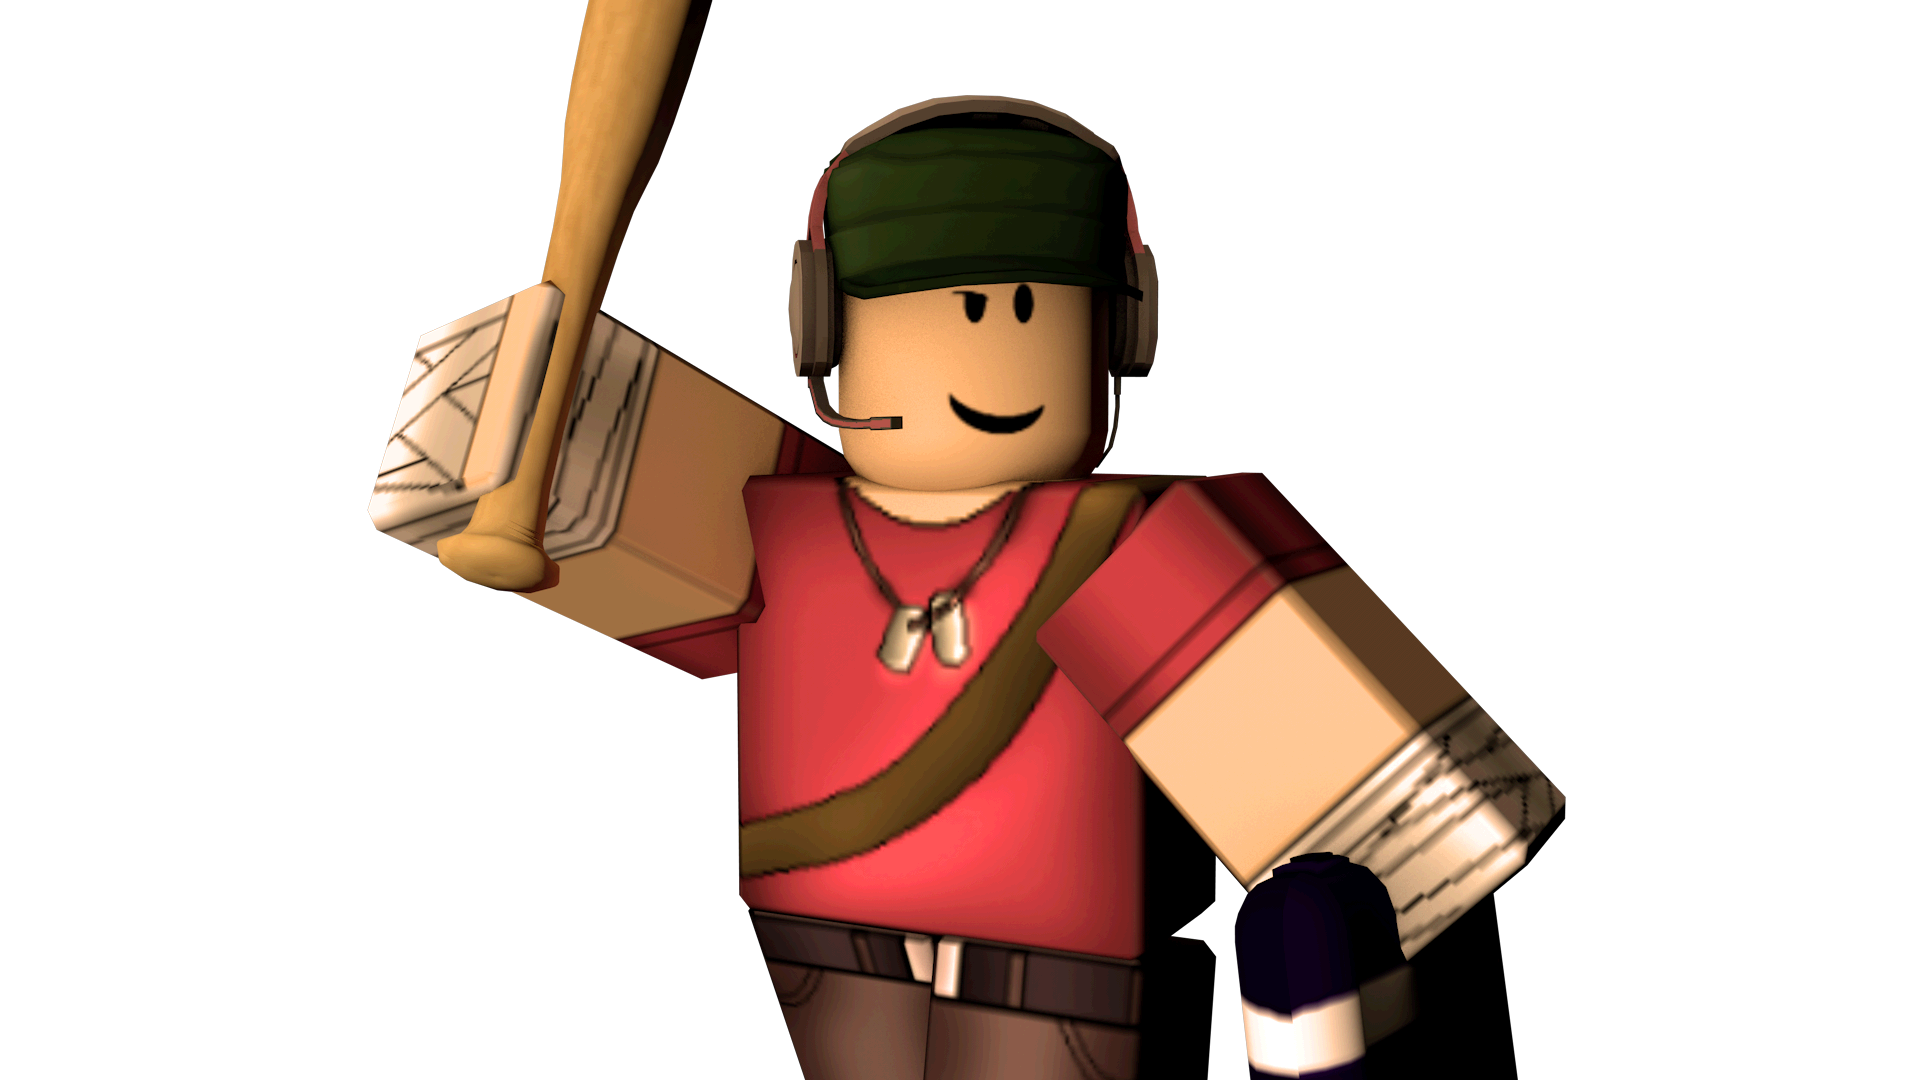 Roblox Tf2 Spy Pants - Get 20000 Robux In 5 Seconds